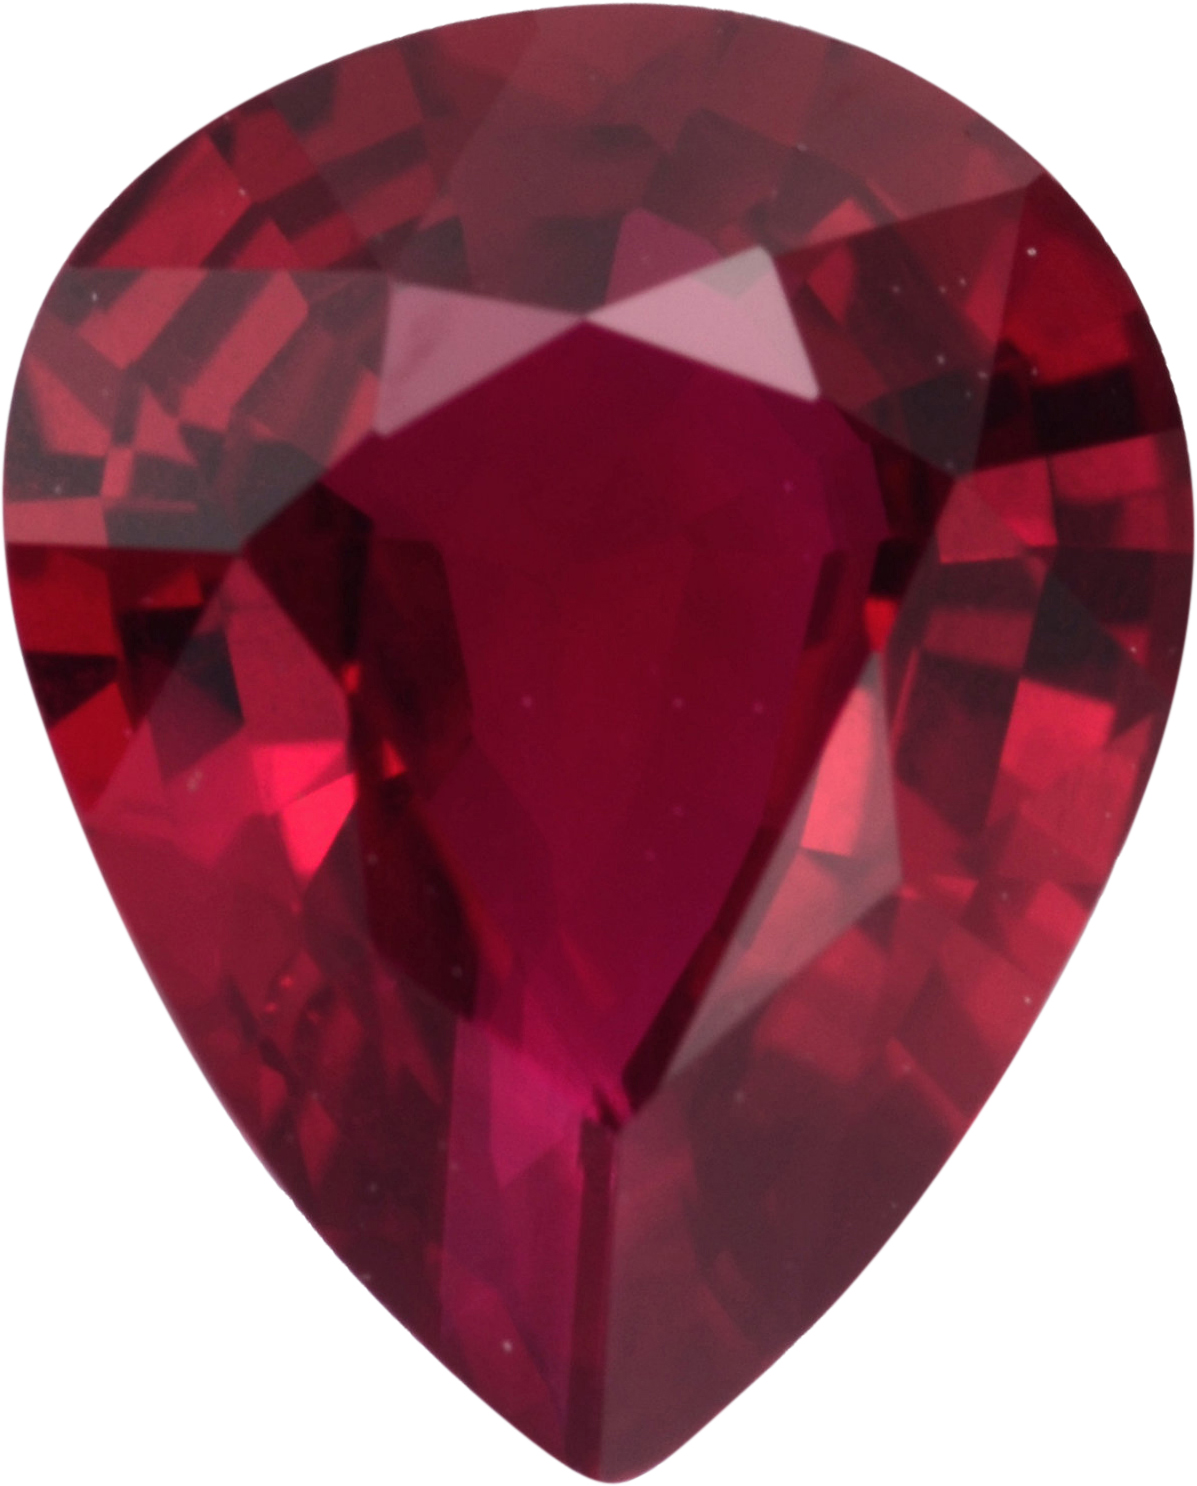 Very Fine Ruby Loose Gem in Pear Cut, Vibrant Purple Red, 7.38 x 5.92  mm, 1.05 Carats